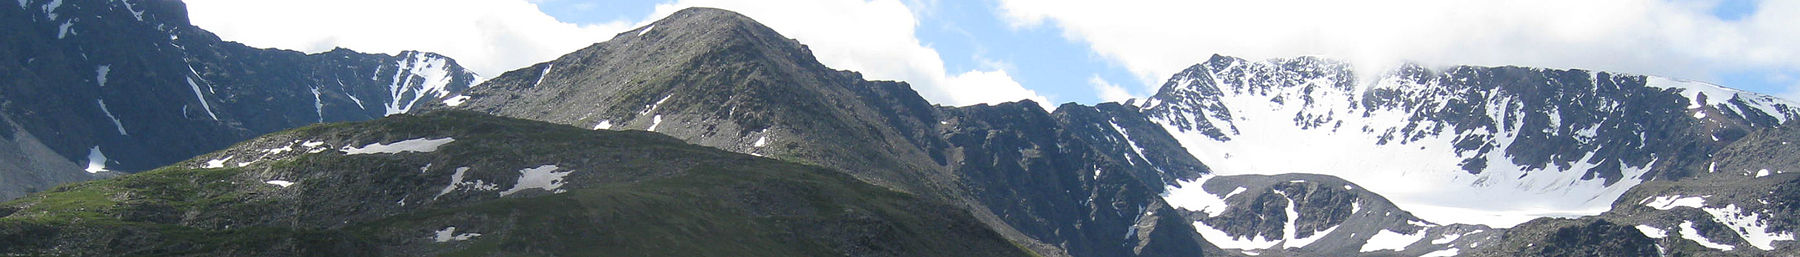 Altai mountains.jpg